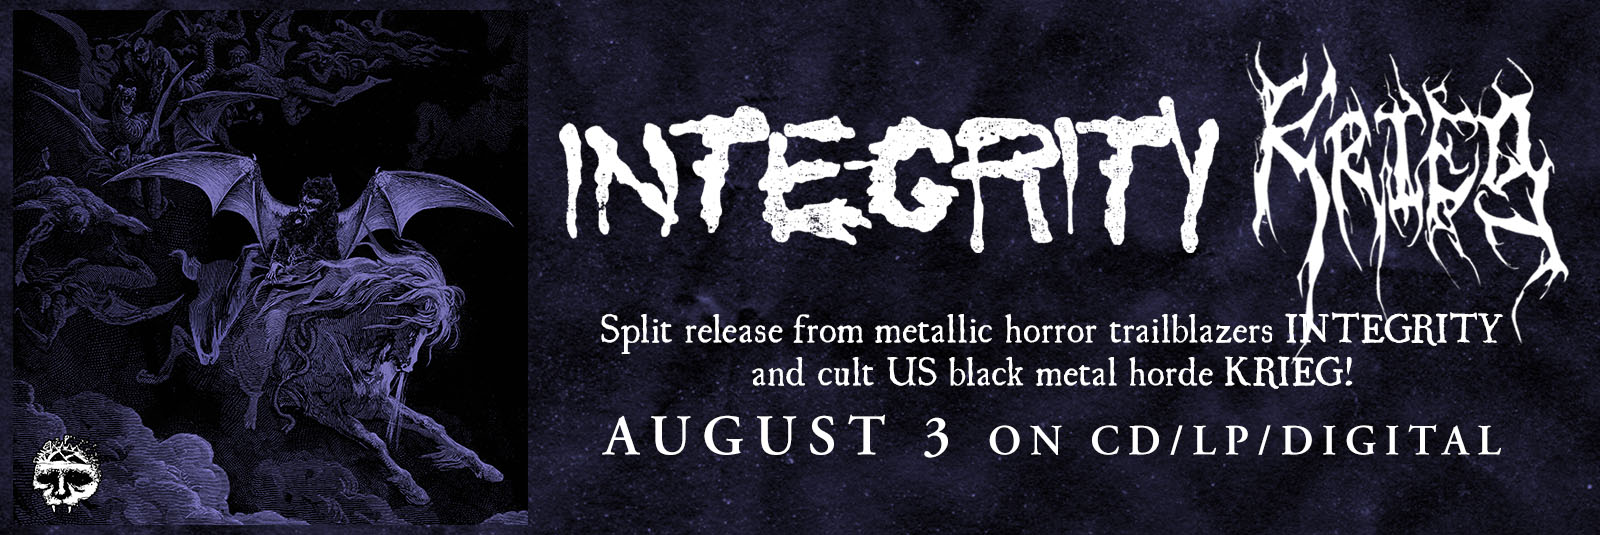 integrity-krieg-split-lp-relapse-august-03